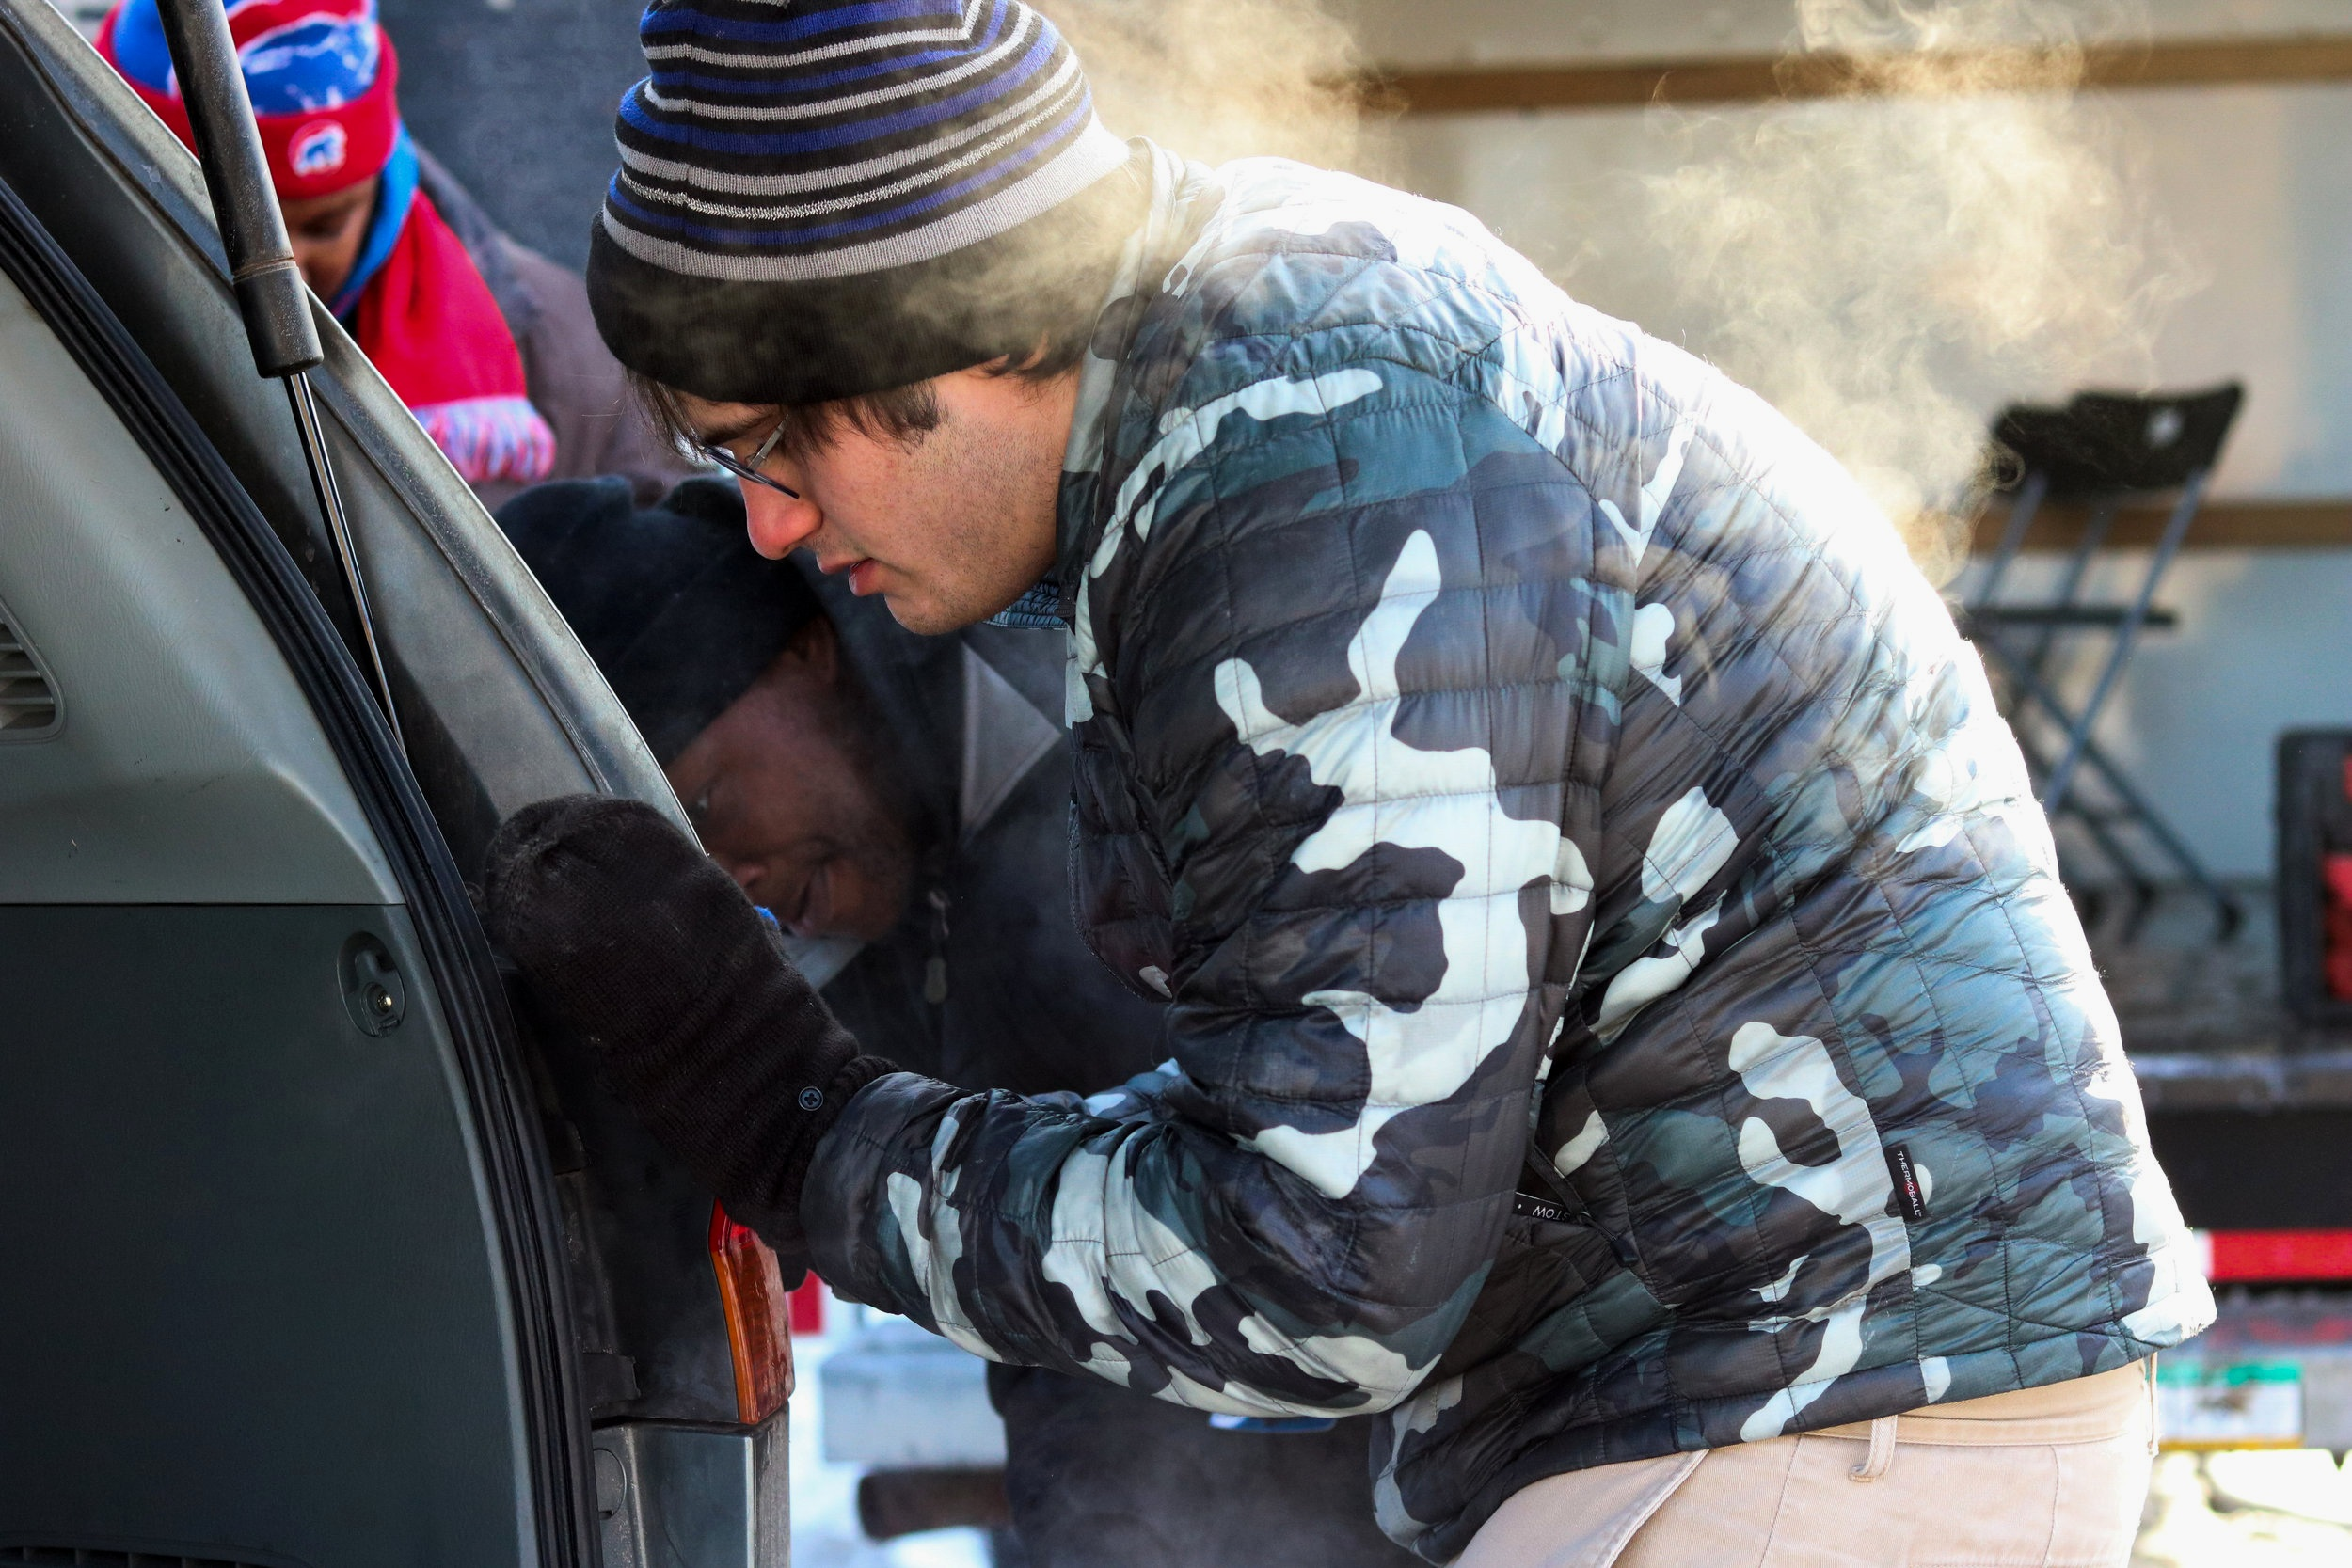 Volunteers helped community members make various repairs on their vehicles.